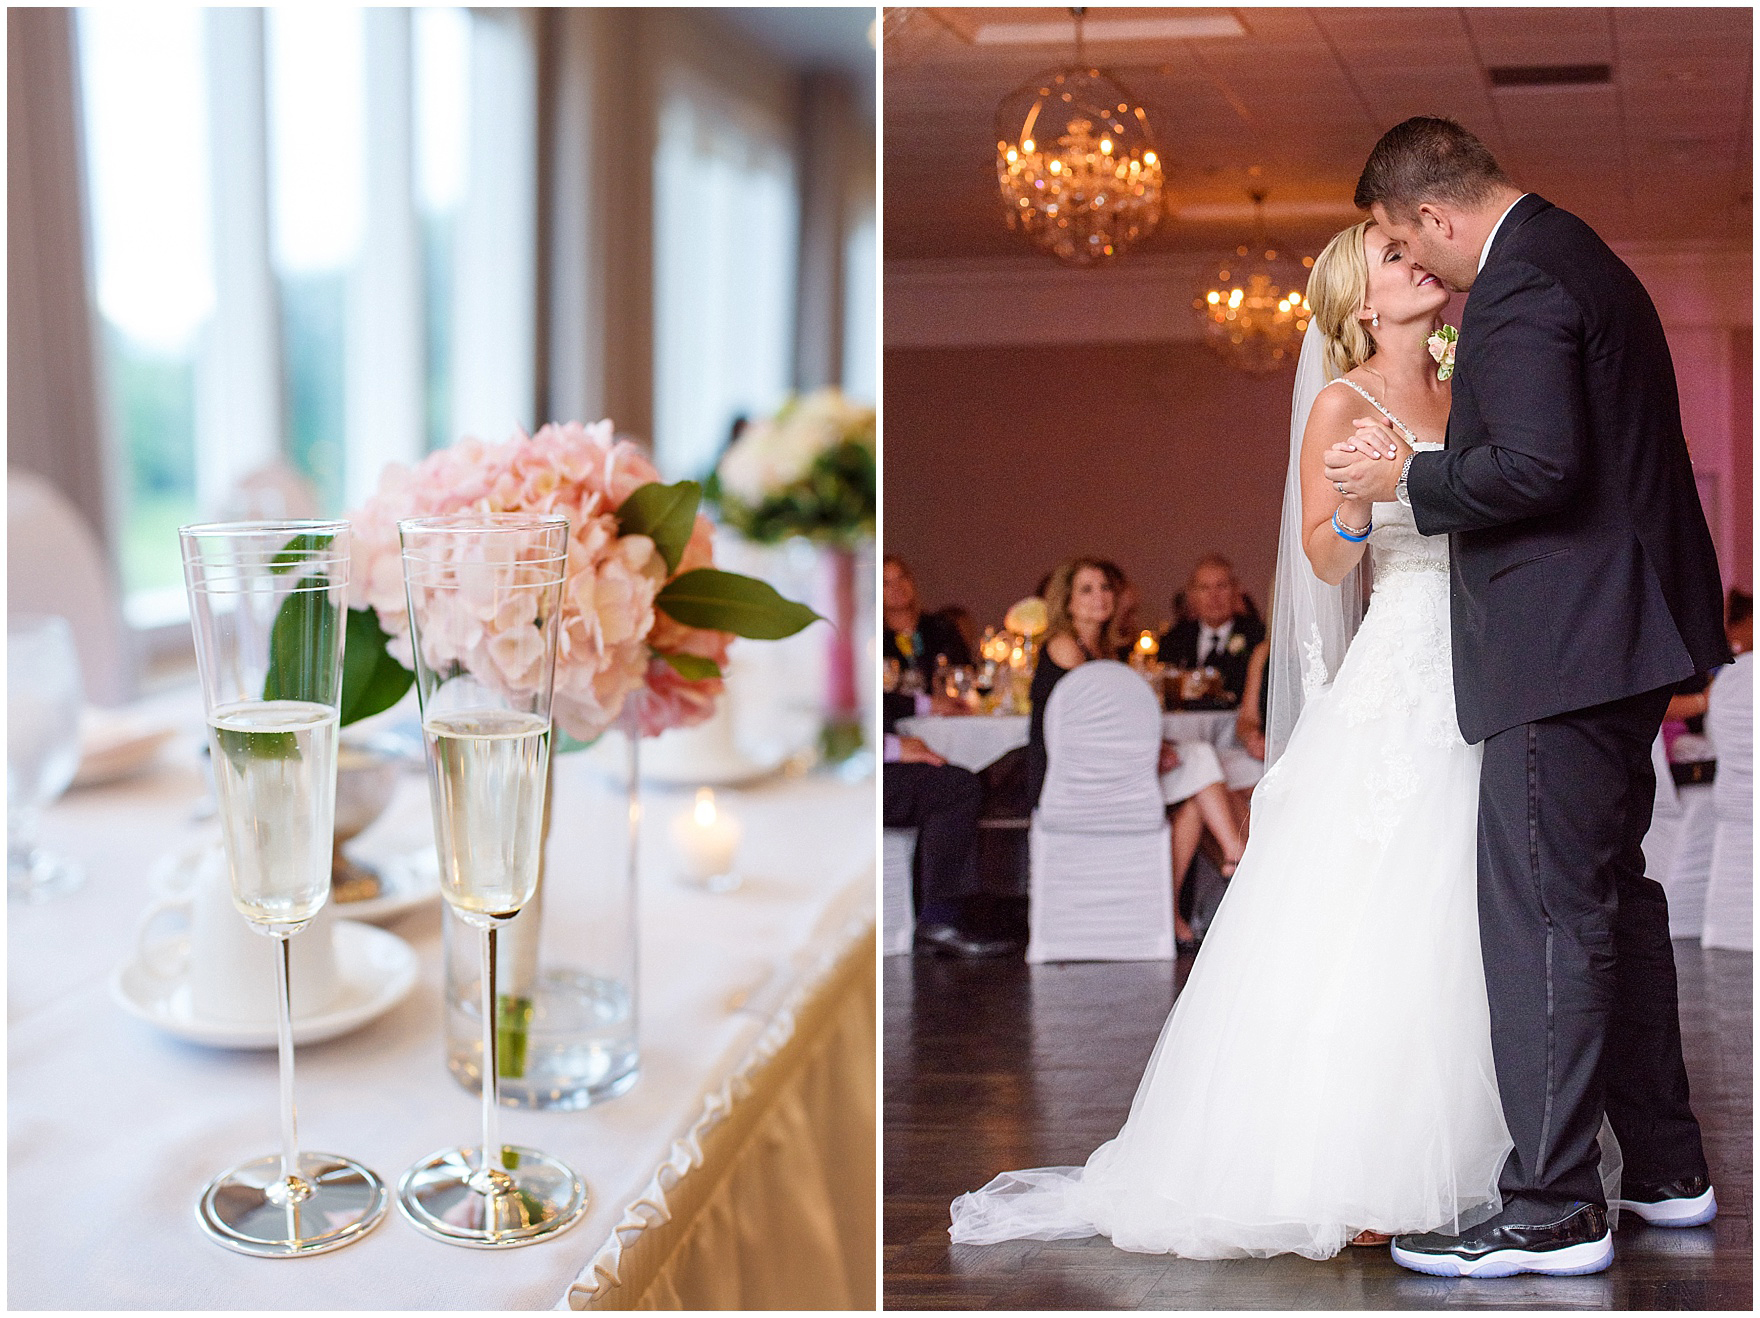 The bride and groom share their first dance at an Itasca Country Club Illinois wedding.